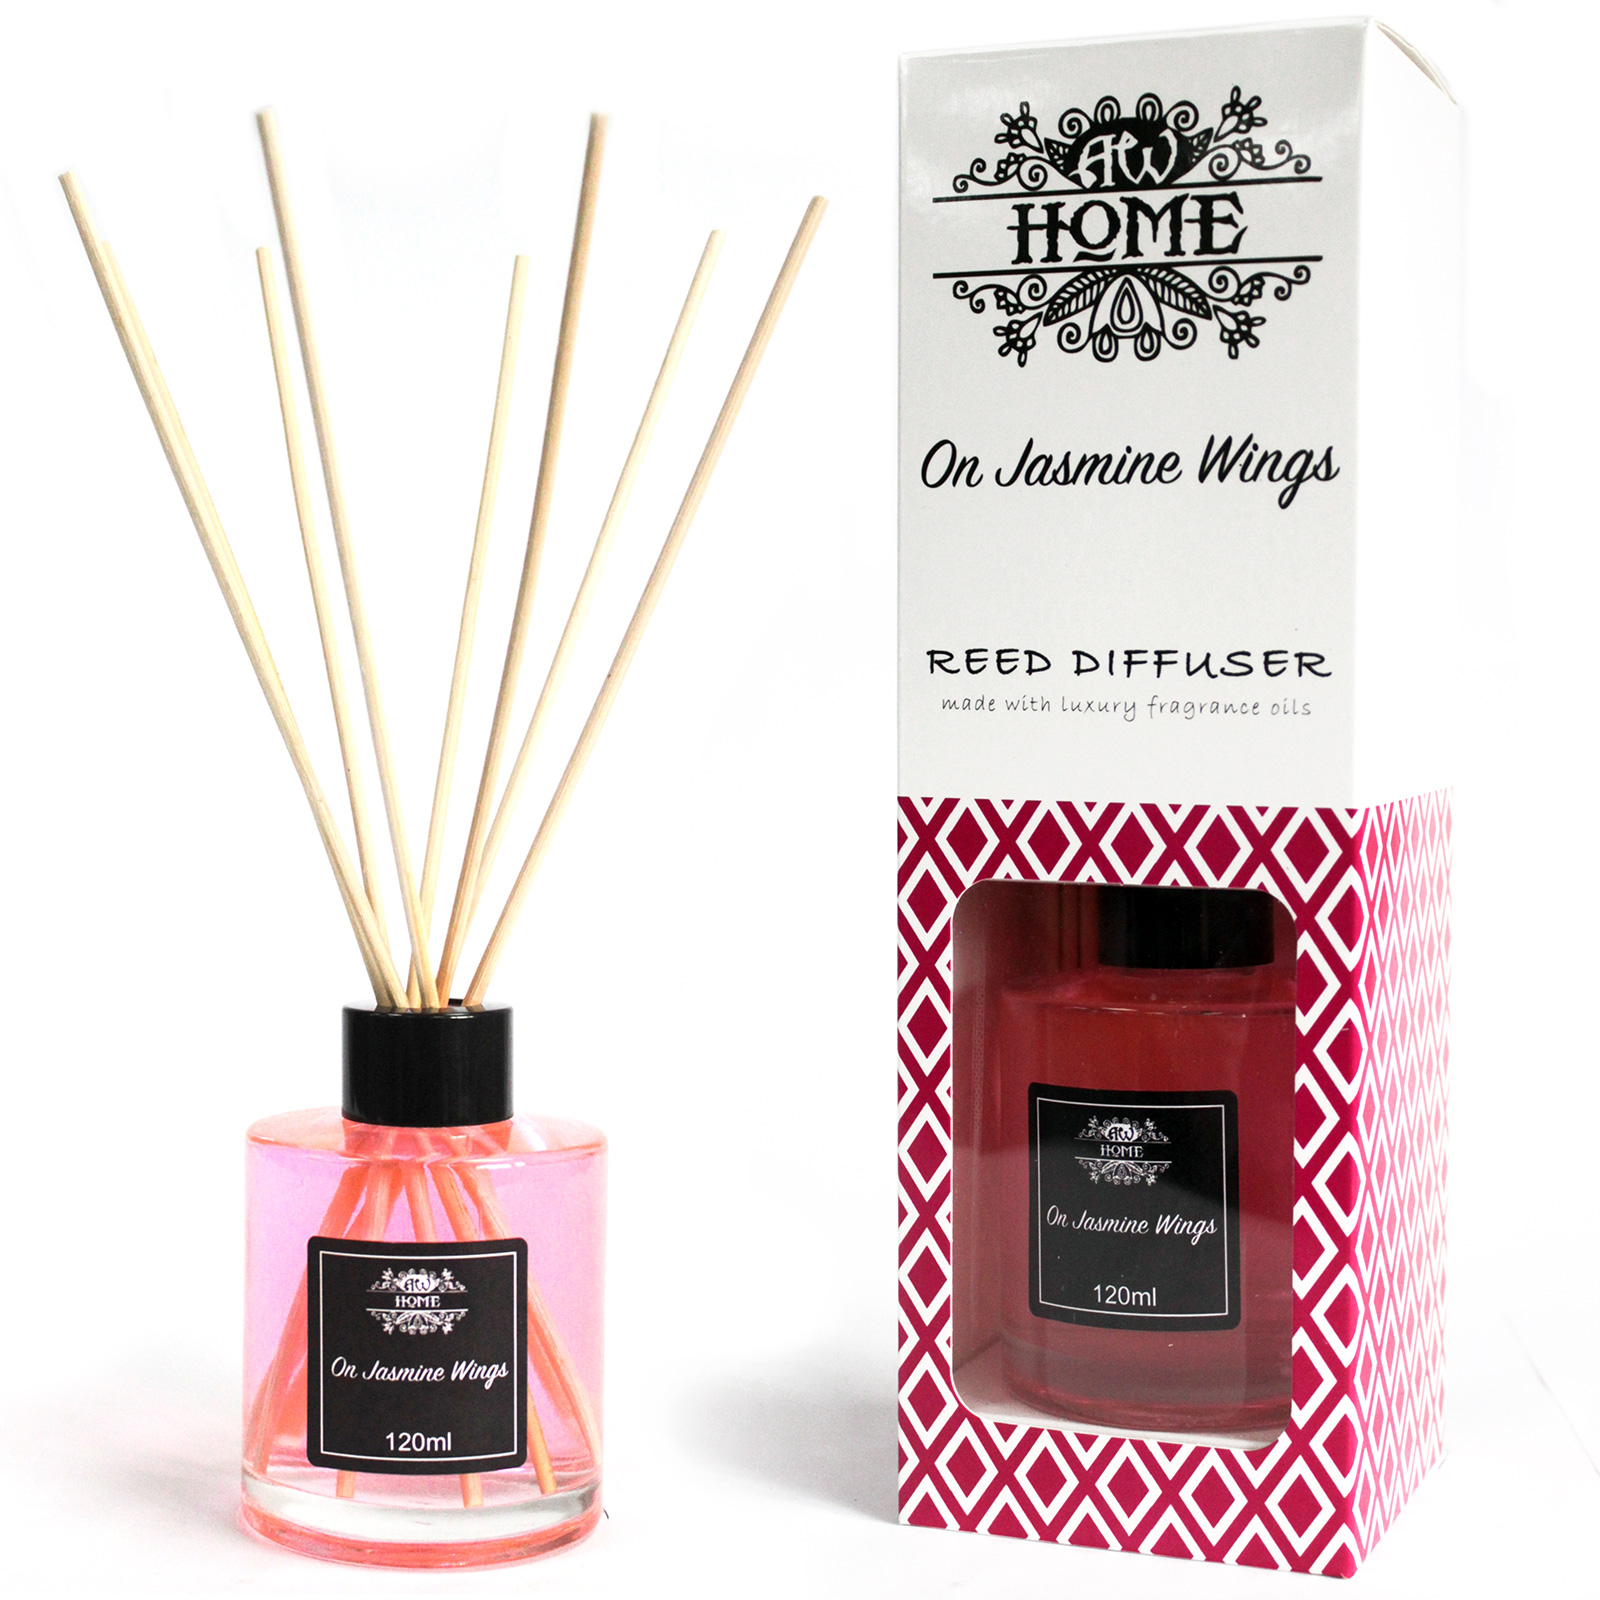 120ml Reed Diffuser - On Jasmine Wings